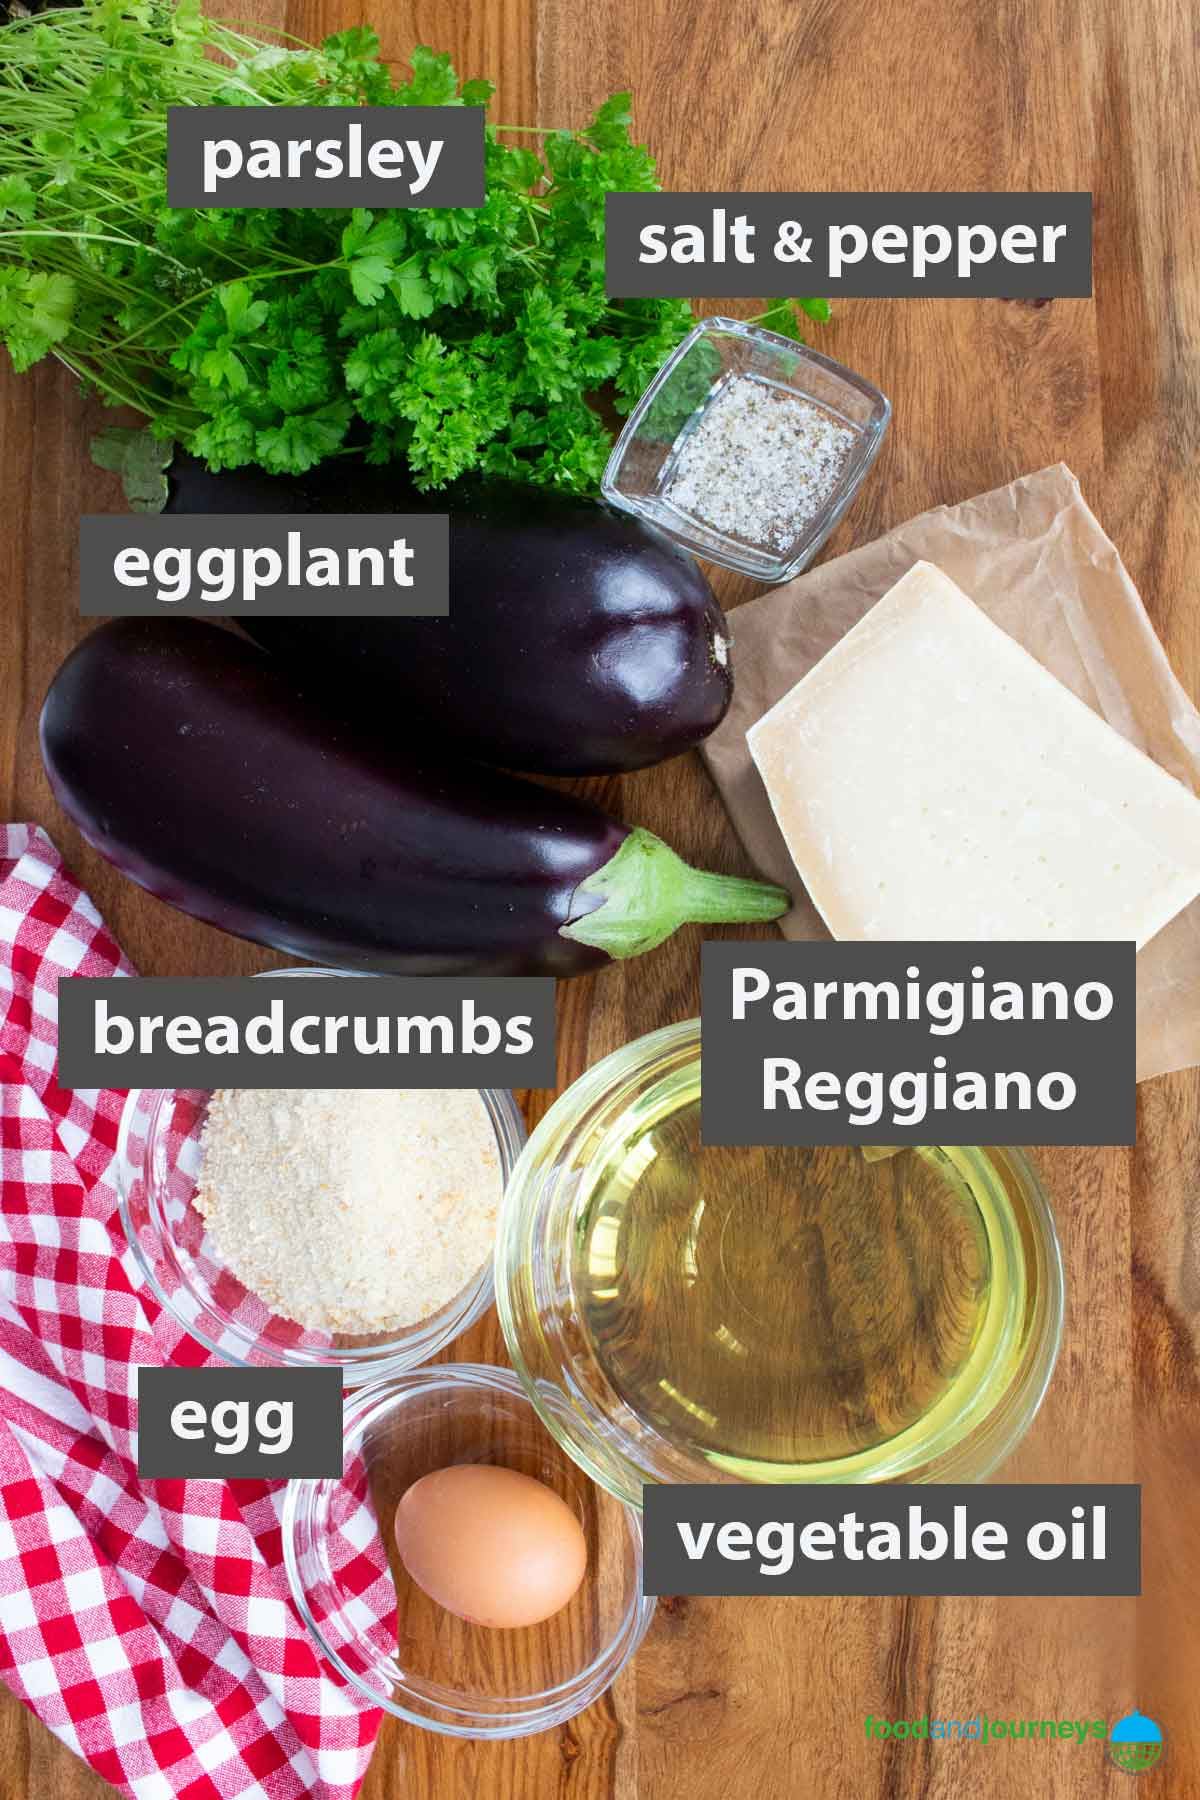 An updated image showing all the ingredients you need to prepare eggplant meatballs at home.